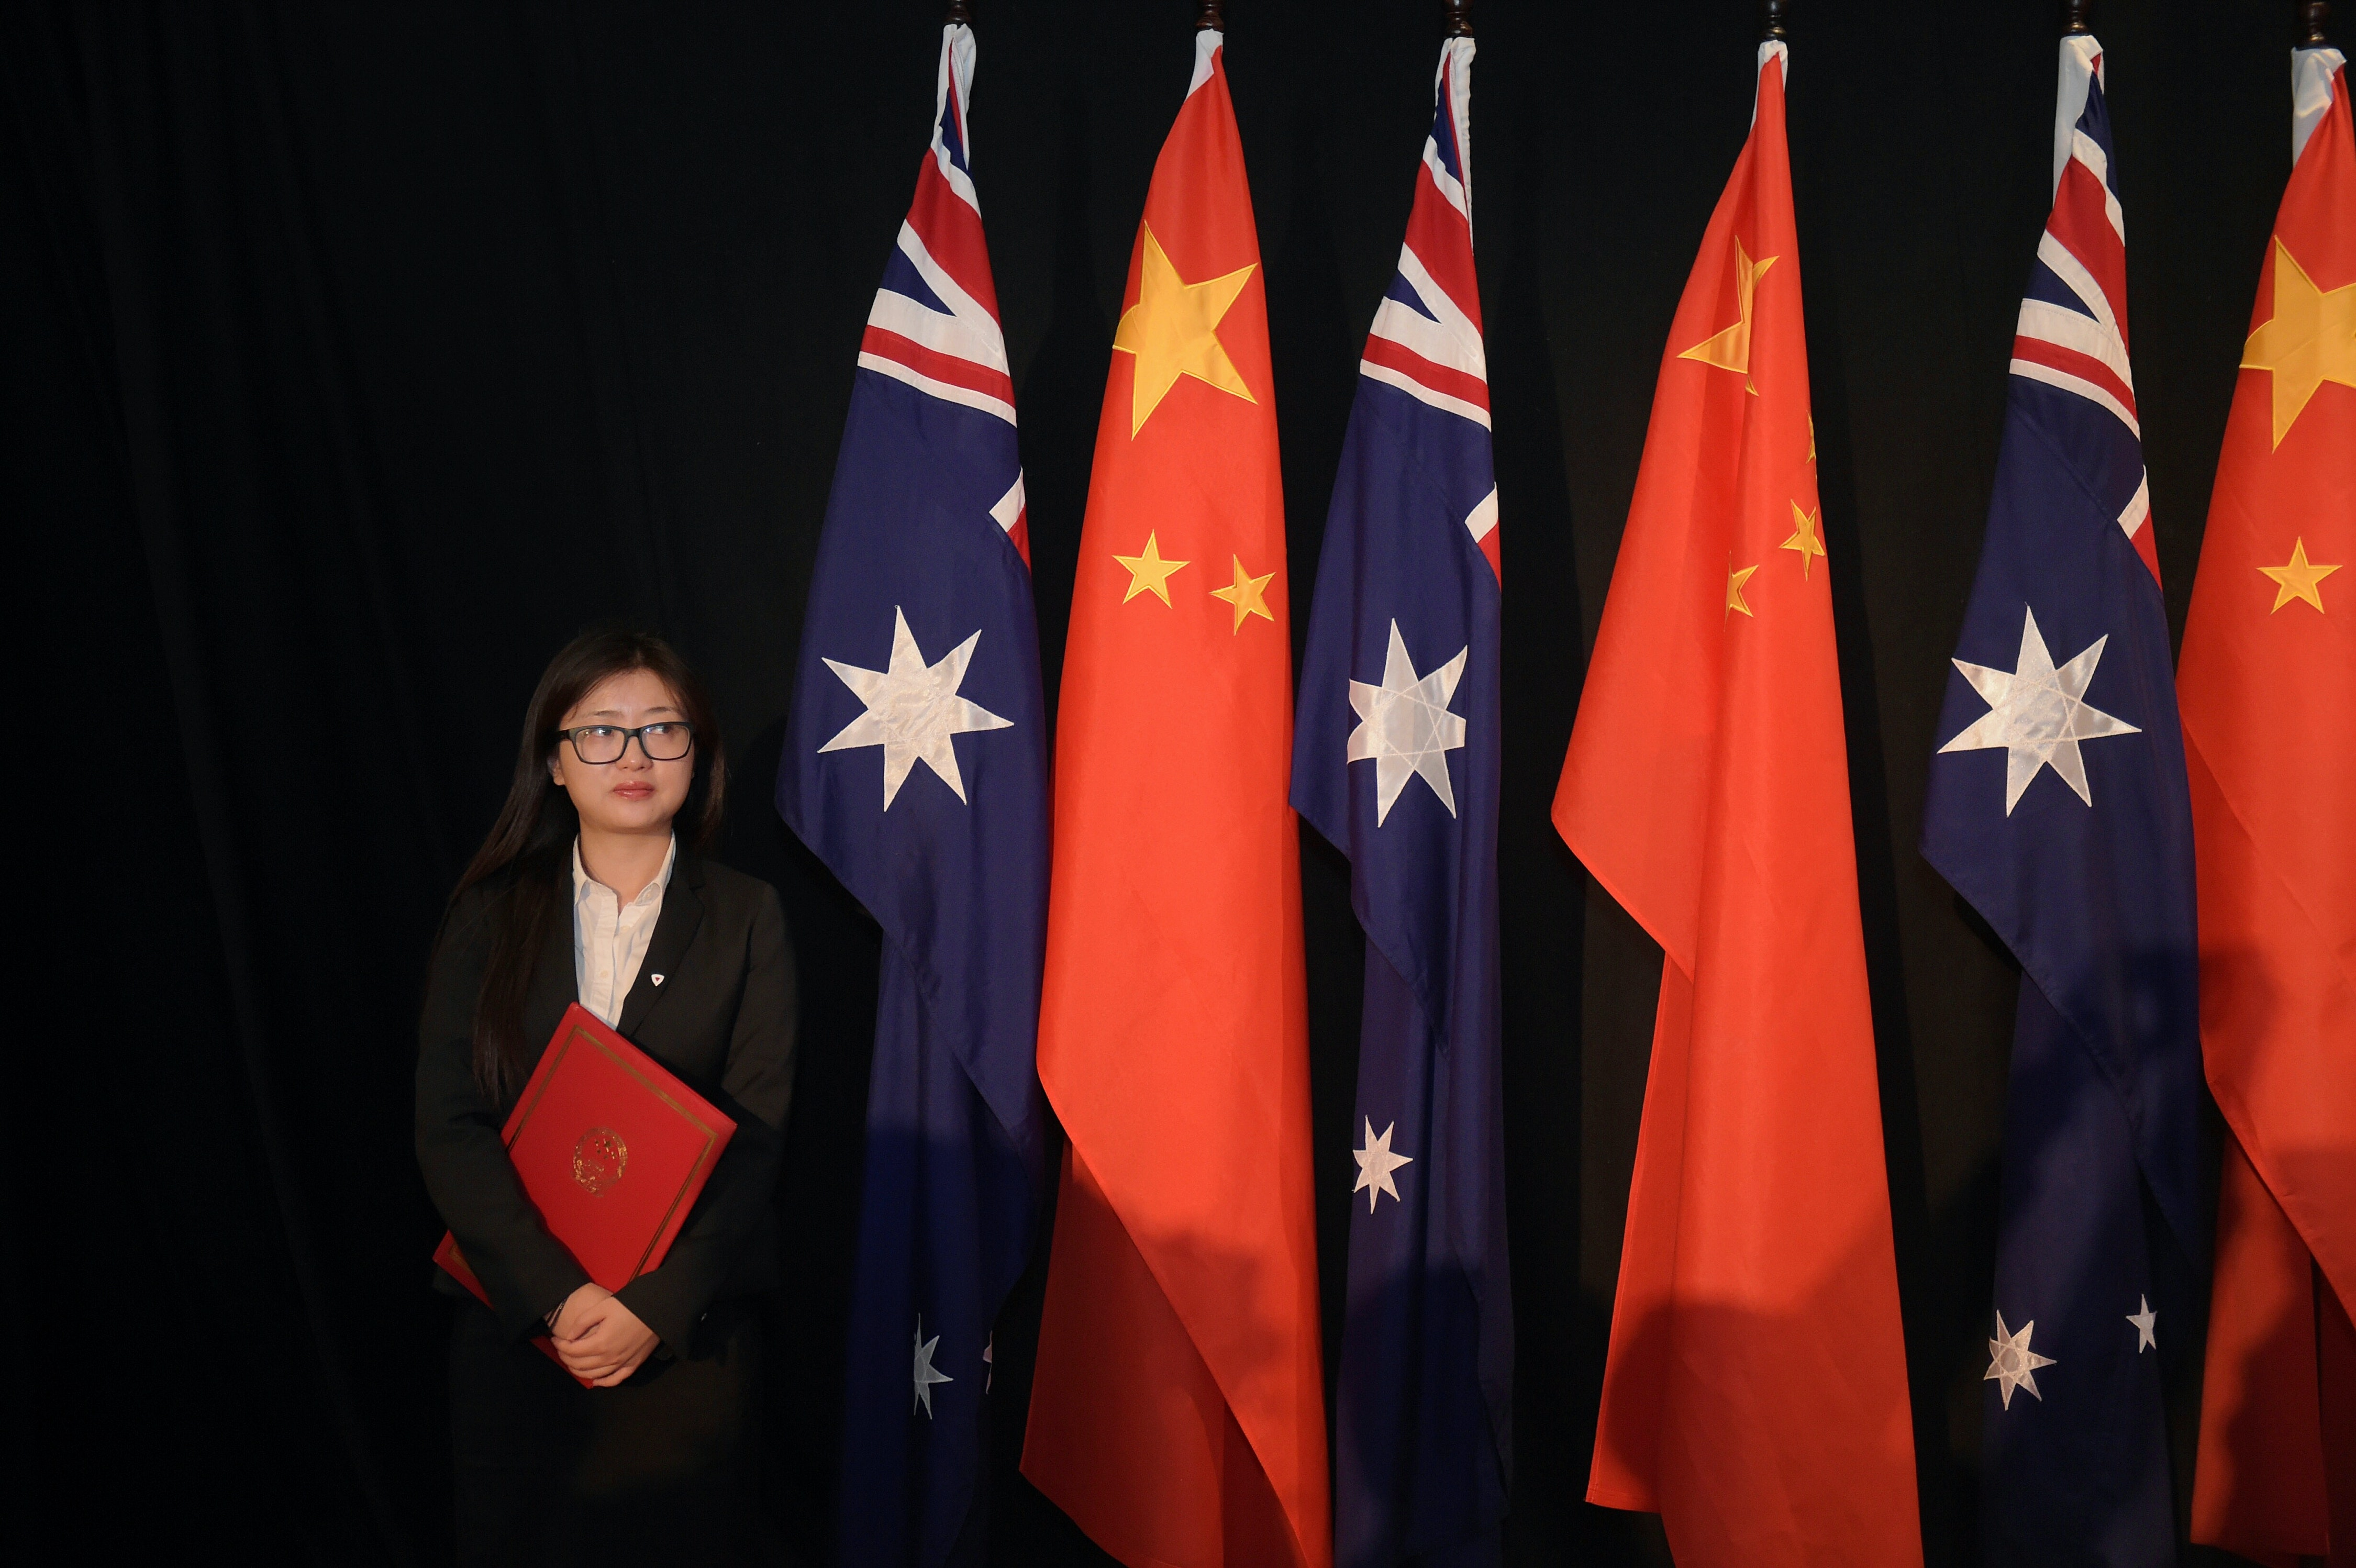 australia and china economics The chinese economy receives a lot of interest in the media but it can be difficult to keep track of the basic facts here is an overview of china's economy in the context of its global economic rise china was the world's largest economy in 1820 - and is the second largest economy today when.